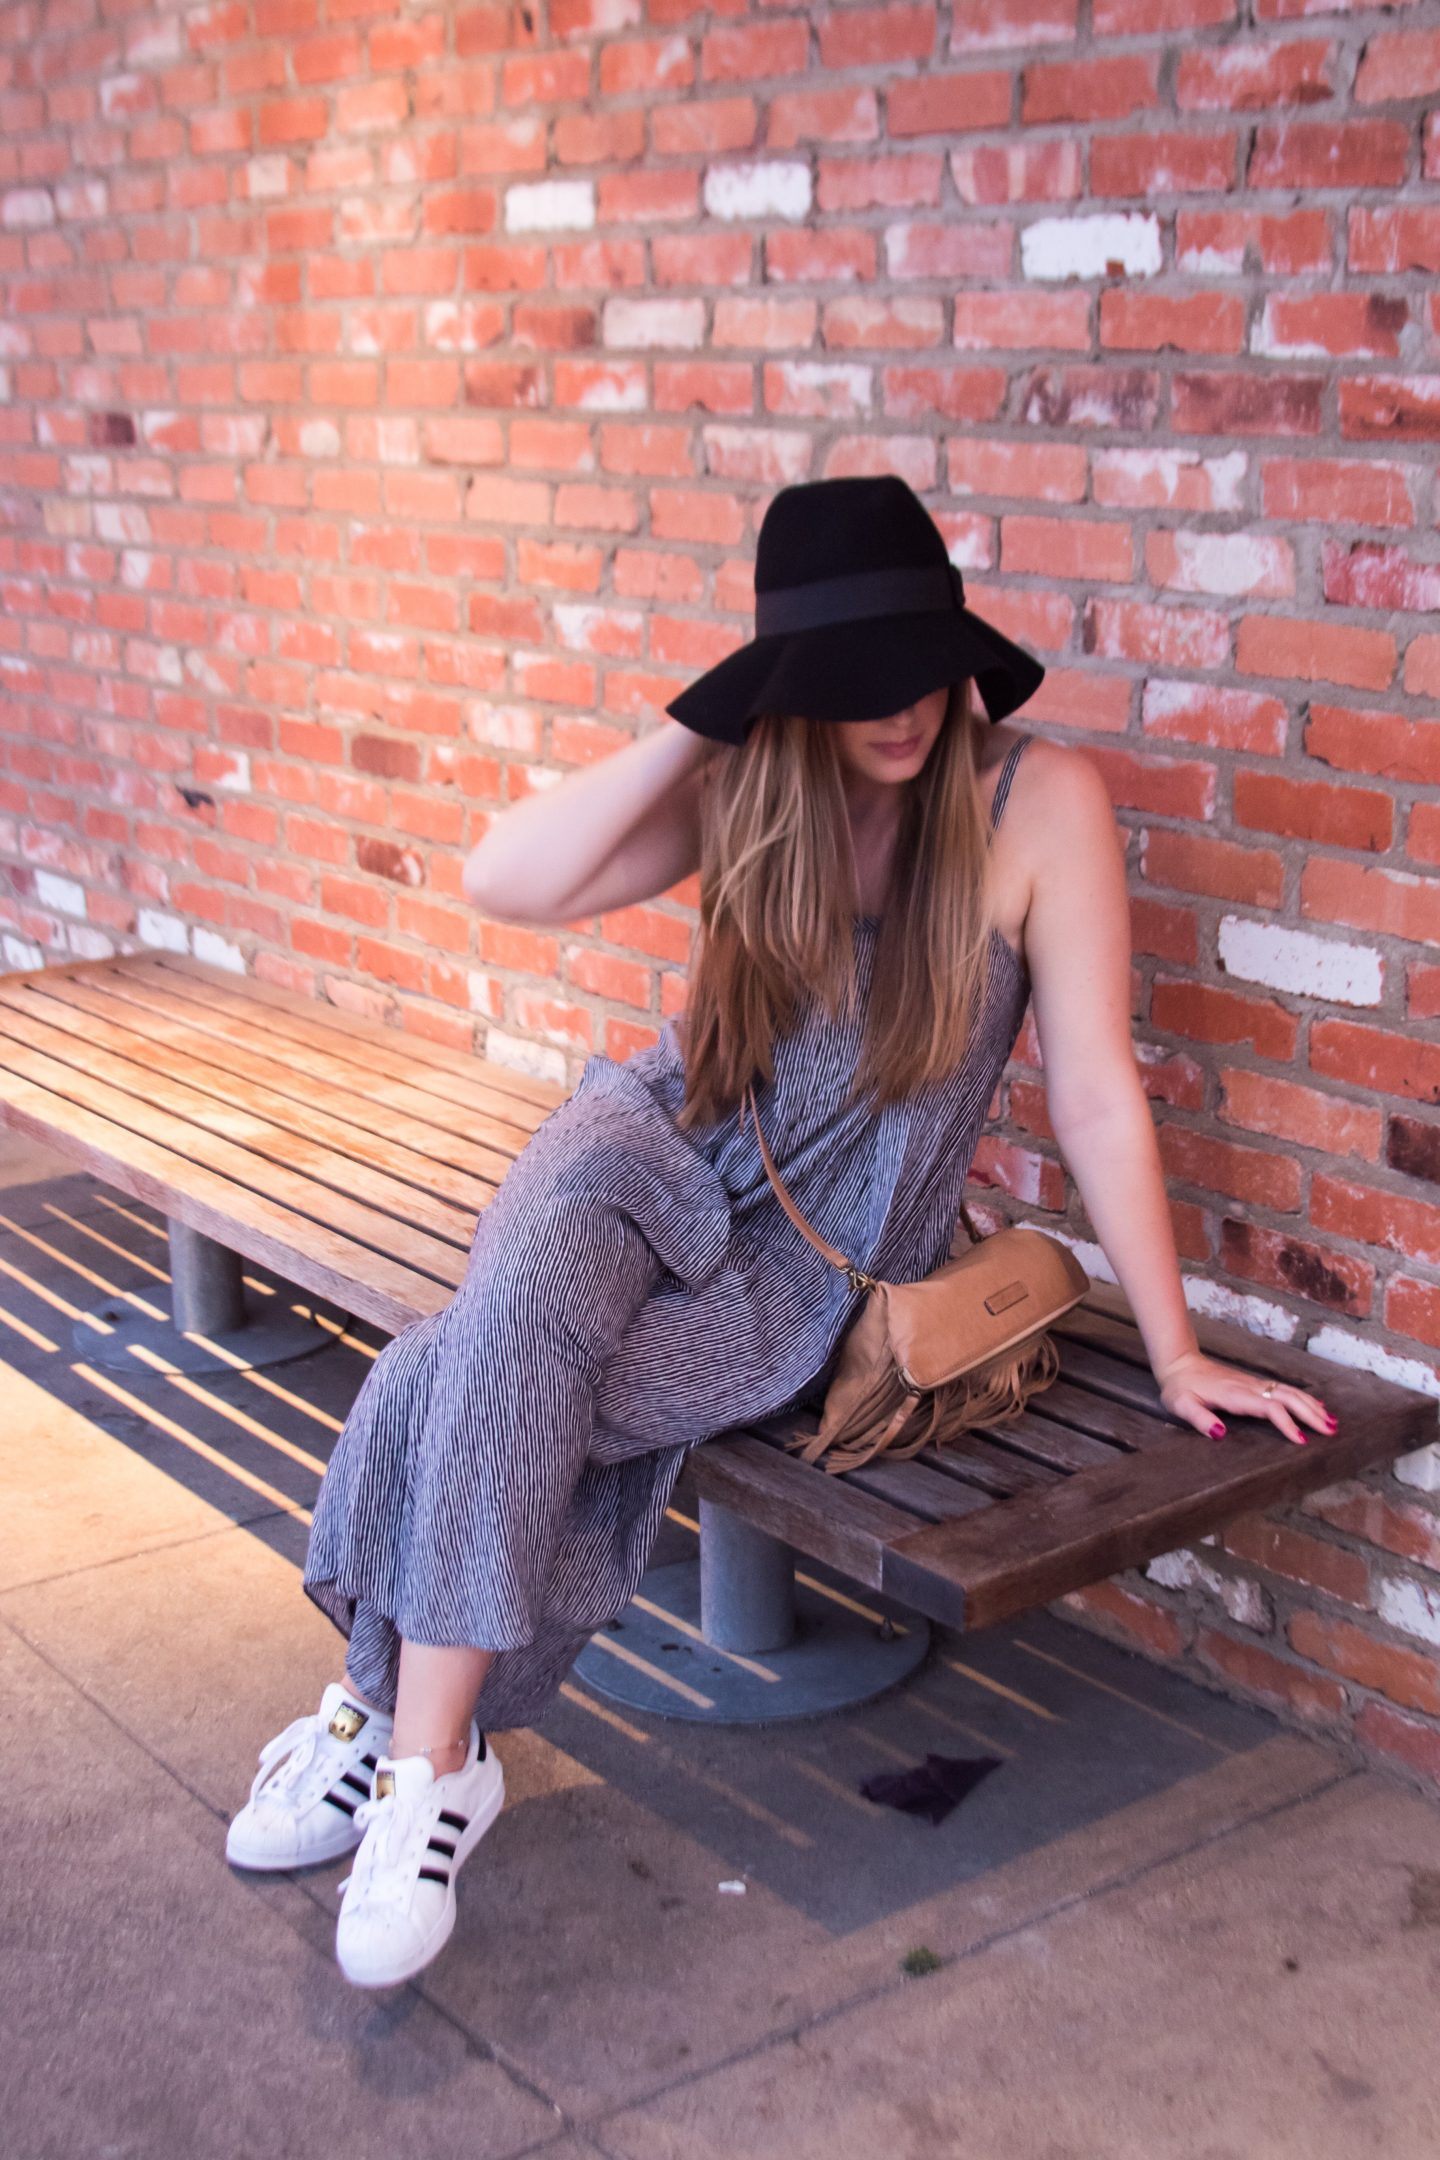 Tacos and Jumpsuits (and I'm in Teen Vogue Online!)